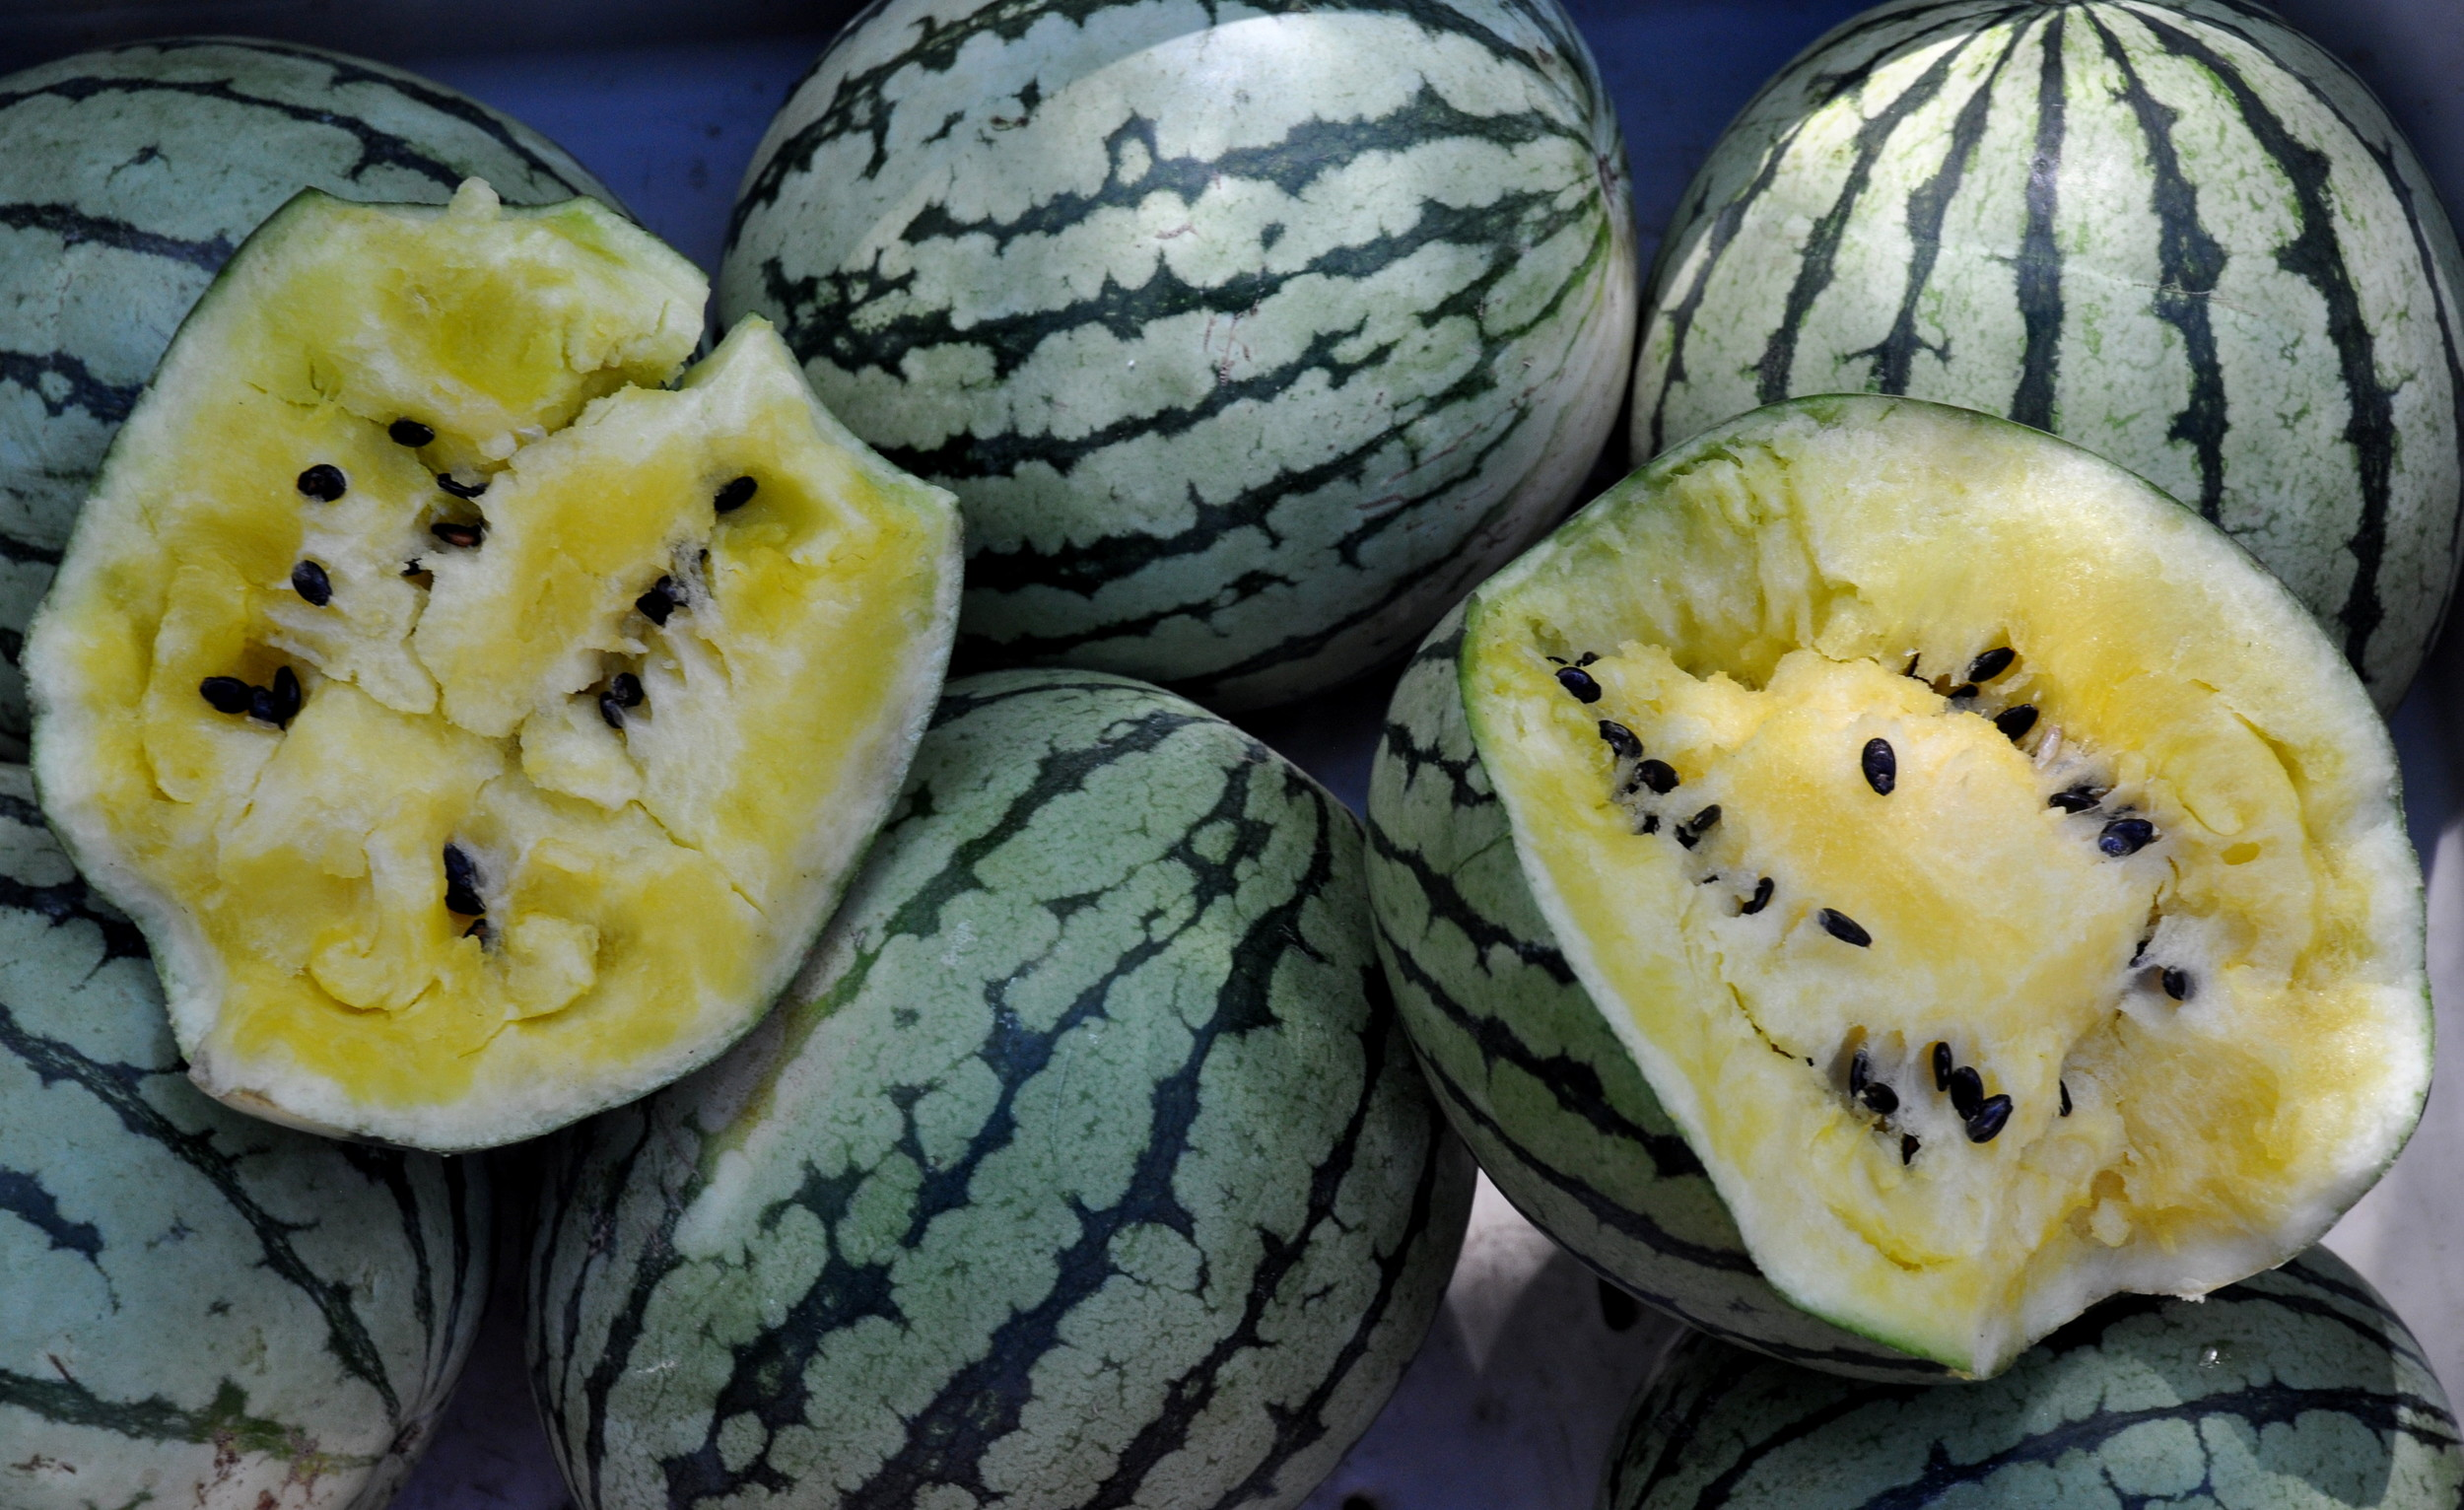 Yellow Doll watermelons from Lyall Farms. Photo copyright 2011 by Zachary D. Lyons.